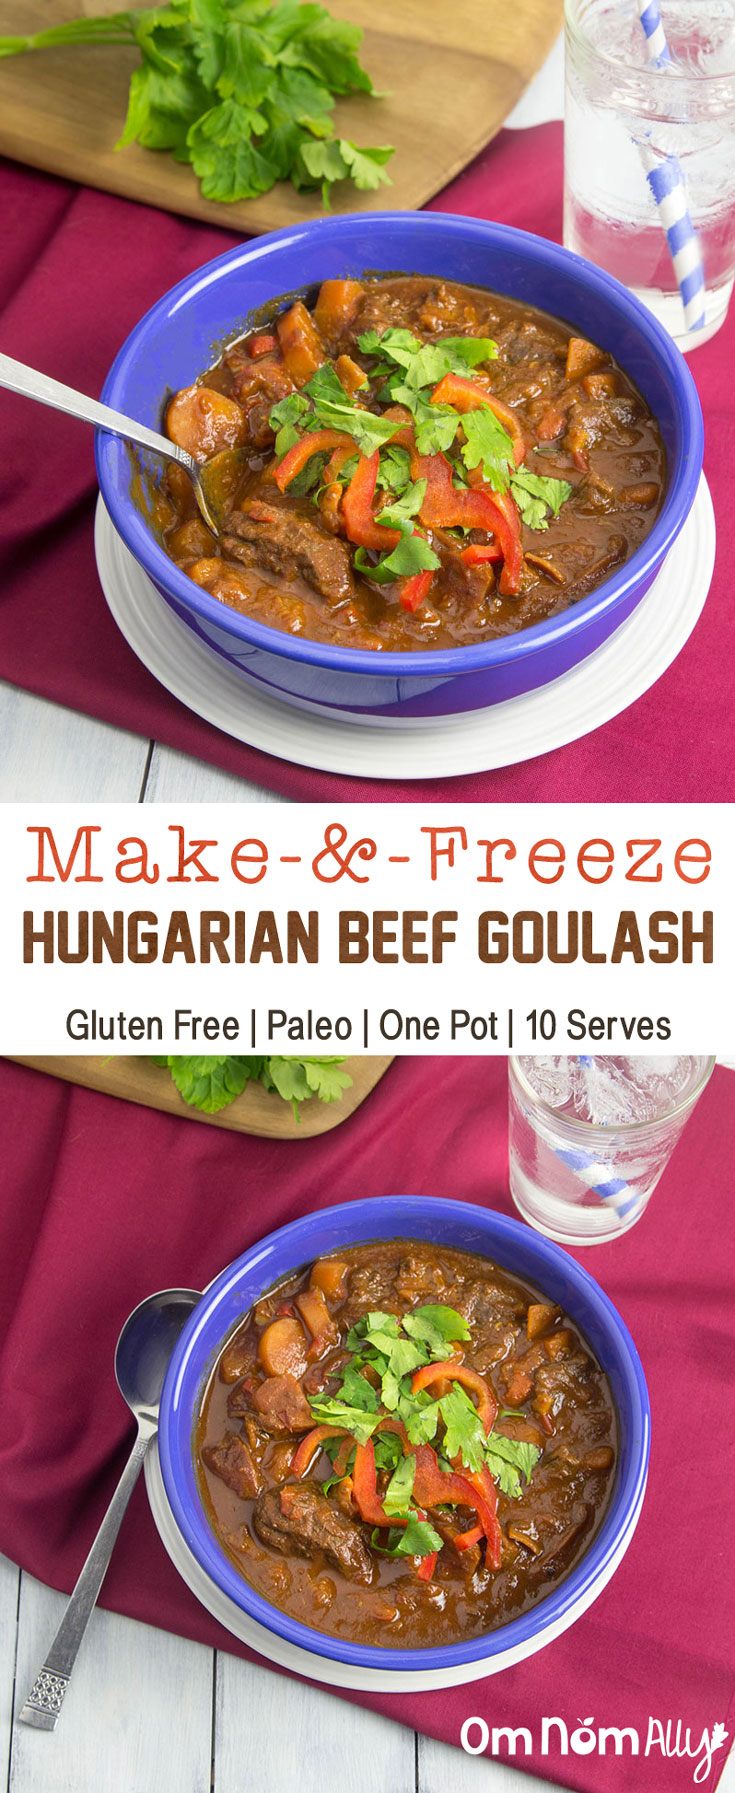 Make-&-Freeze Hungarian Beef Goulash @OmNomAlly - This one pot meal is Paleo, Gluten-free and makes 10 serves for your freezer - dinner is sorted!